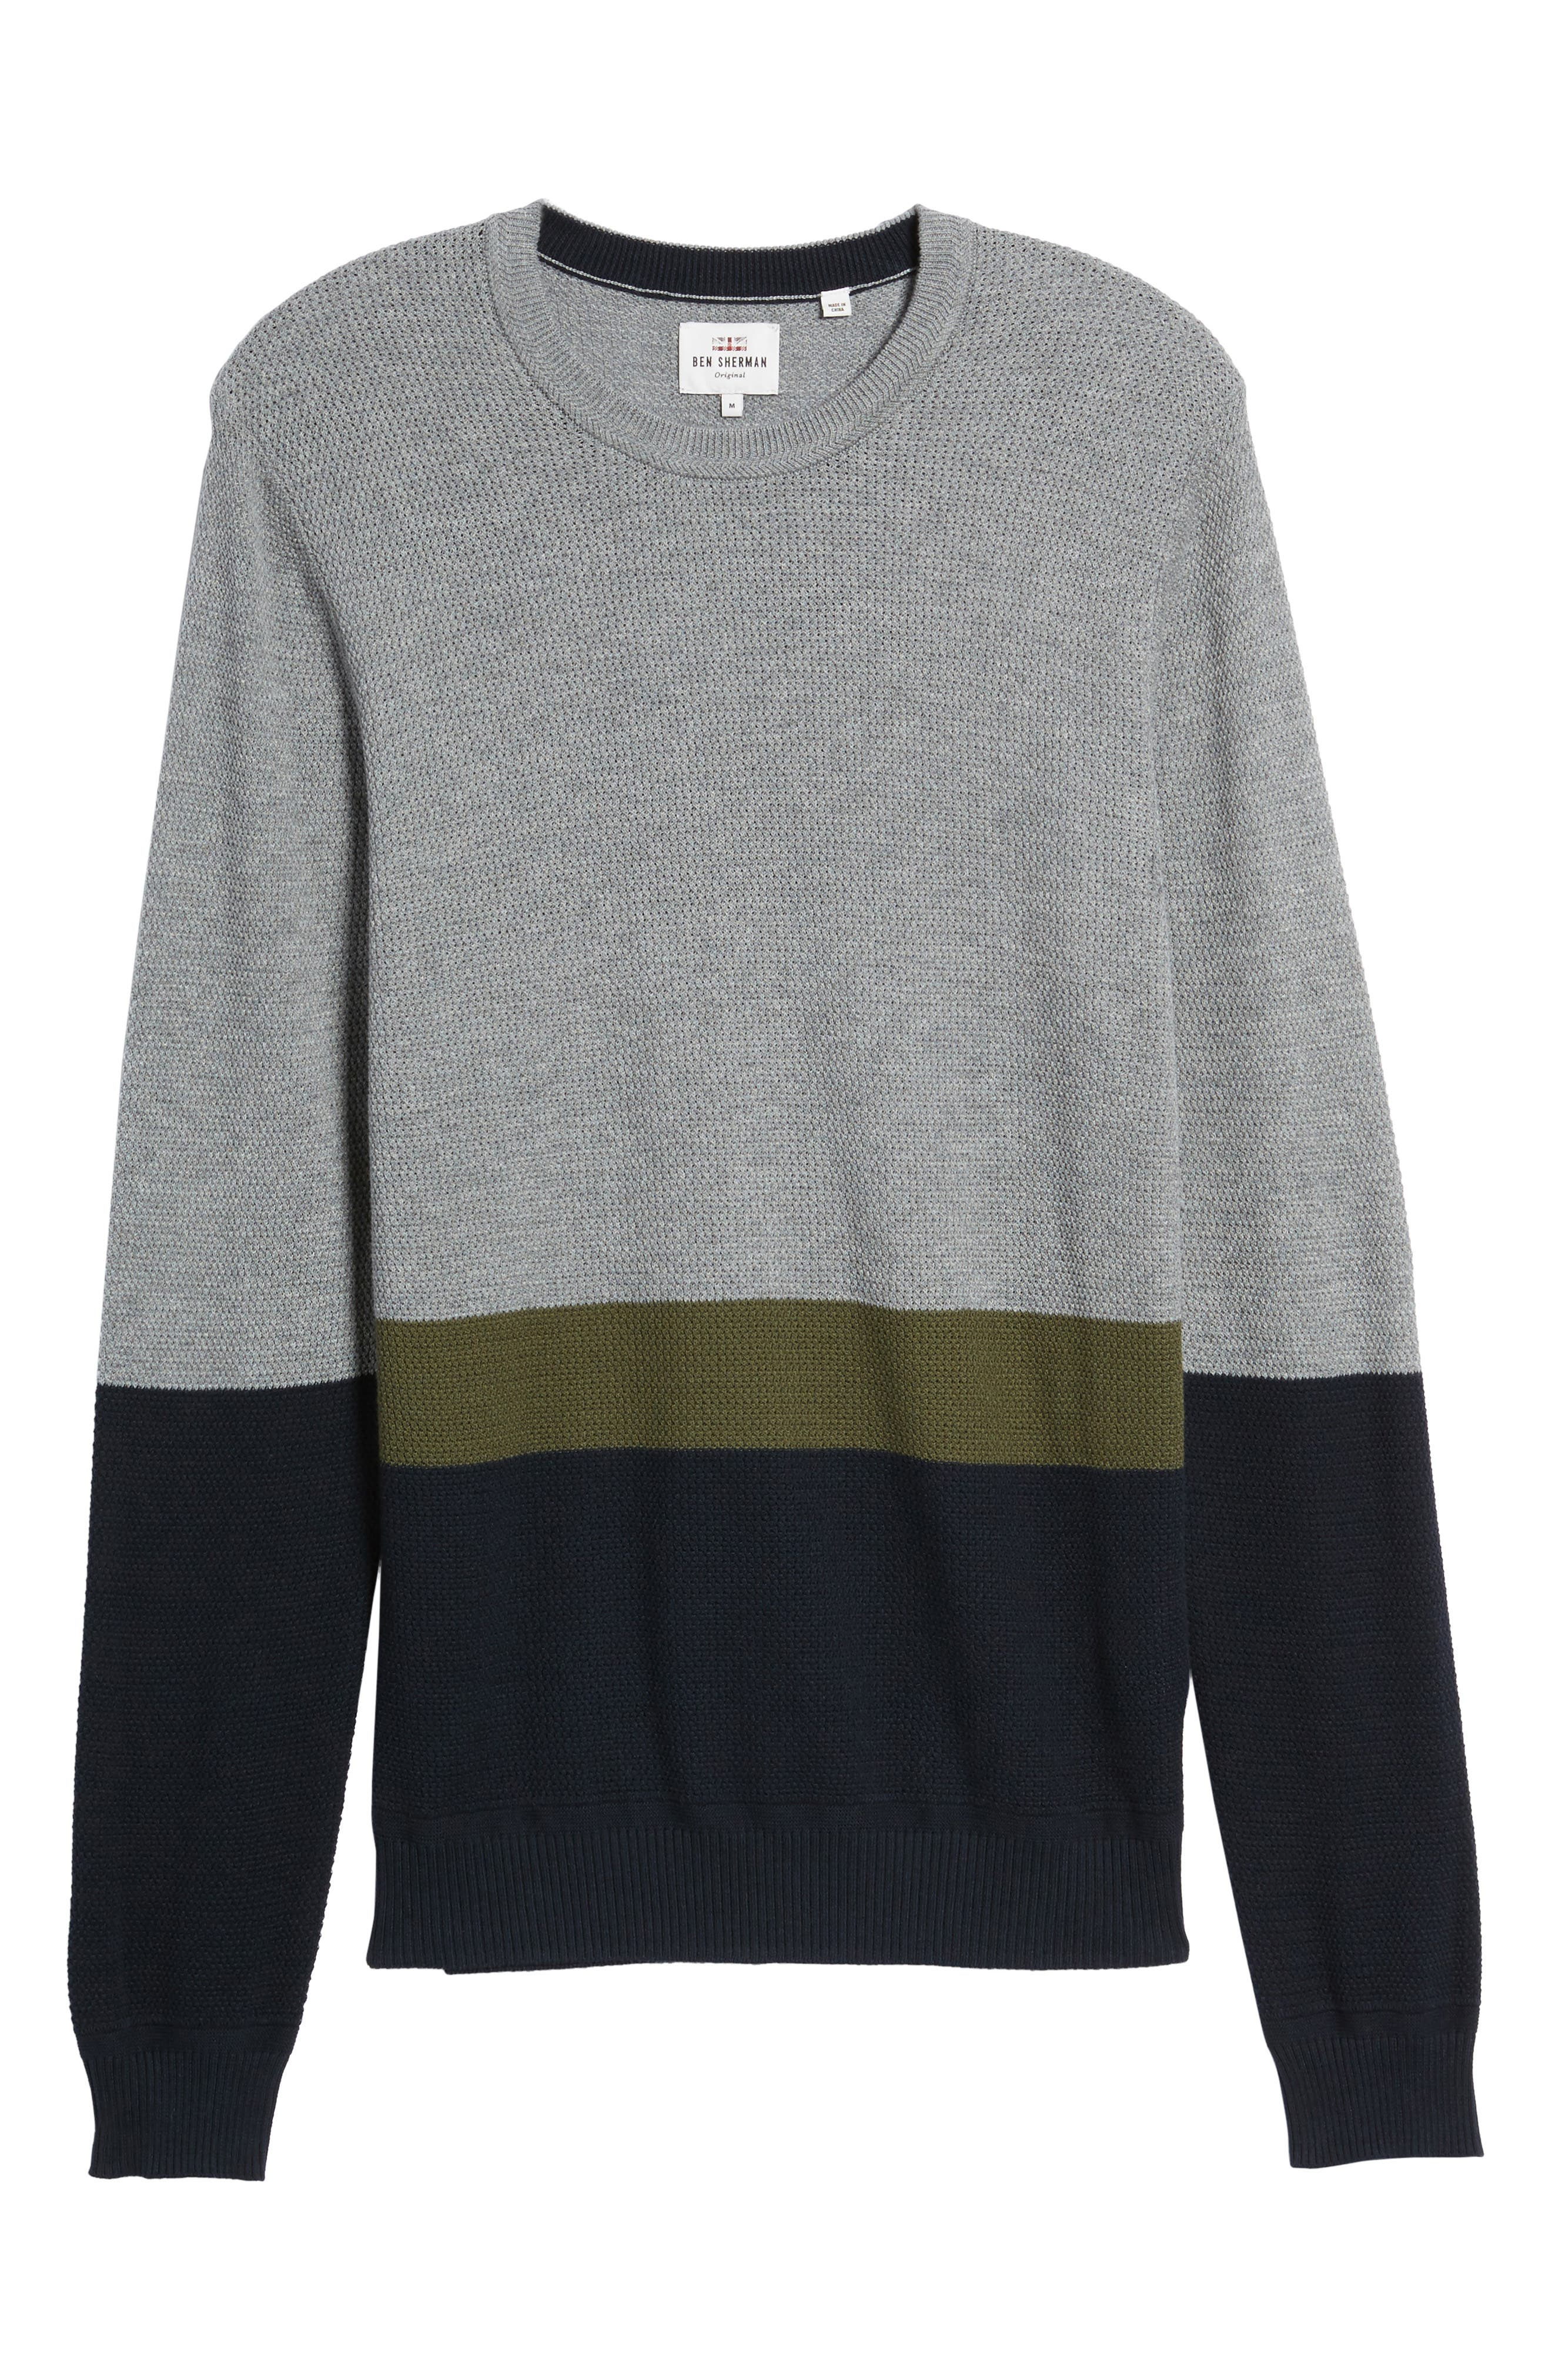 Textured Colorblock Sweater,                             Alternate thumbnail 6, color,                             036